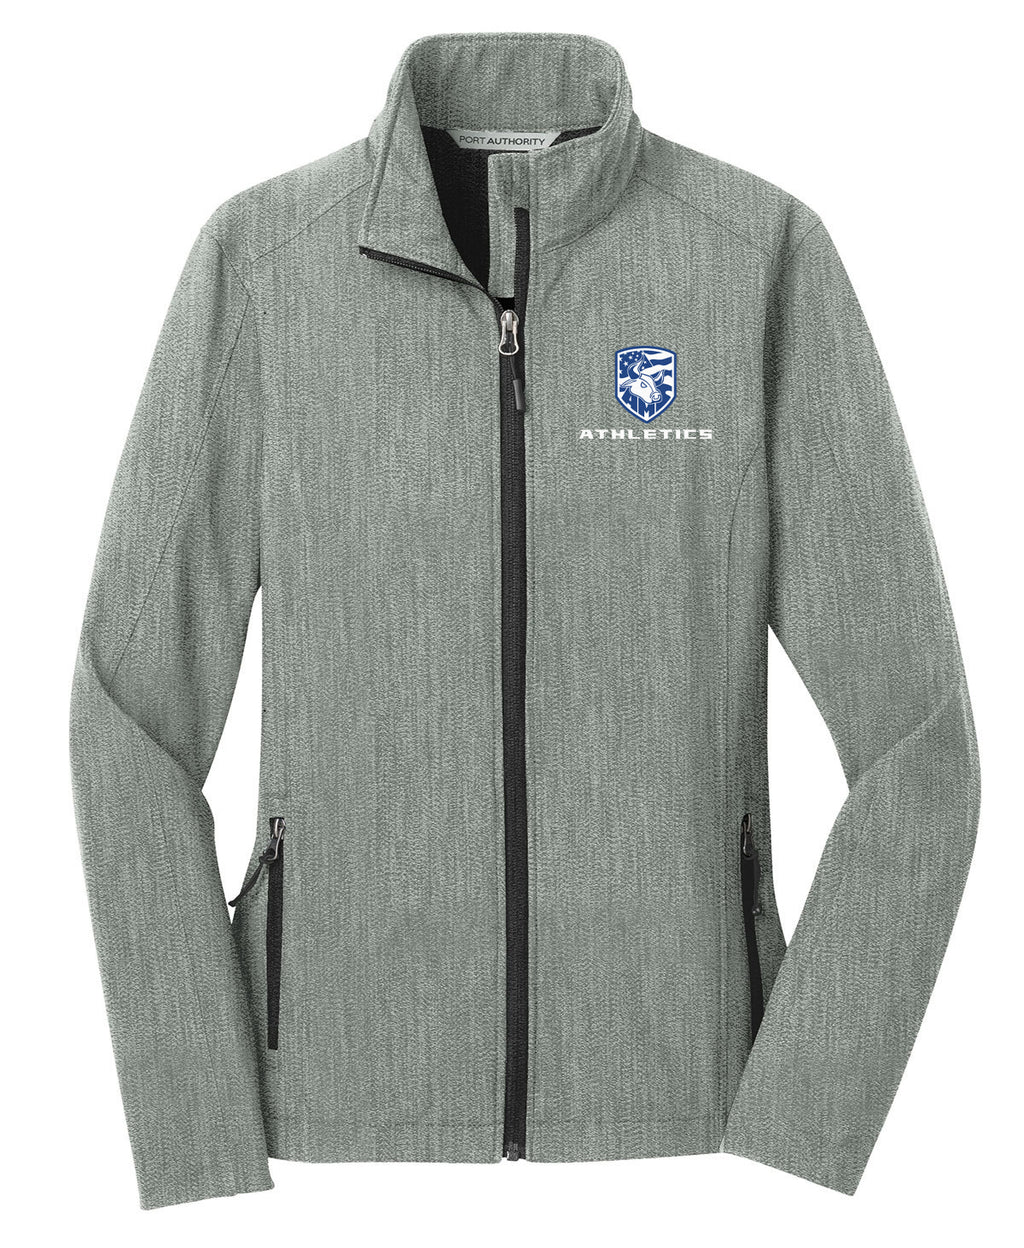 Accompsett Middle School Women's Pearl Heather Soft Shell Jacket